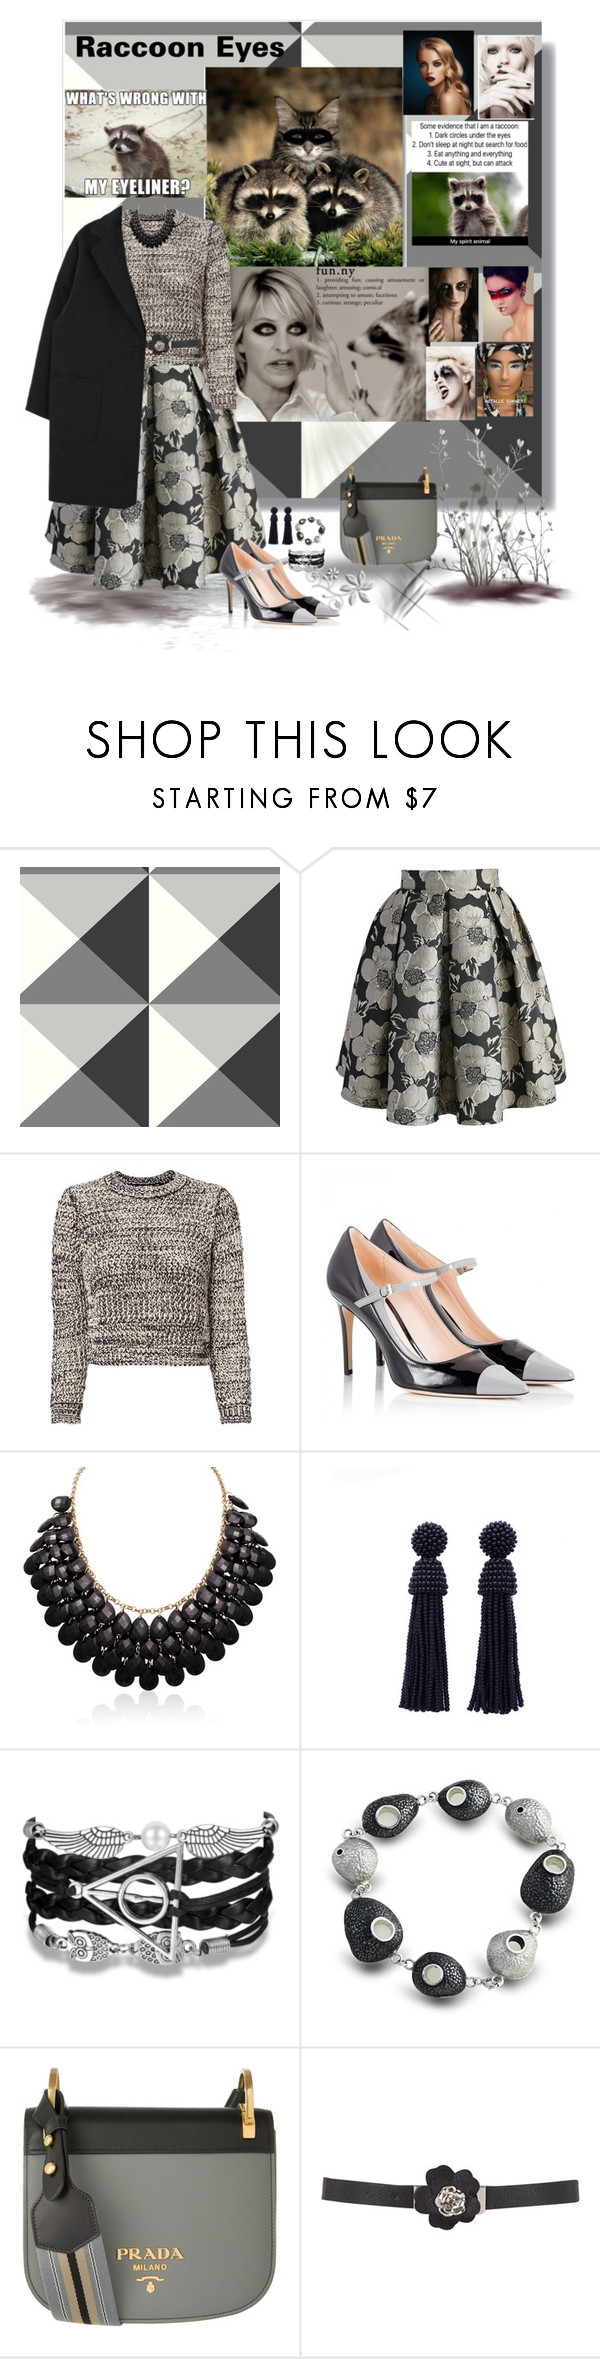 """Makeup ideas and an outfit to match"" by deborah-518 ❤ liked on Polyvore featuring Calvin Klein, Chicwish, 10 Crosby Derek Lam, Fratelli Karida, Adoriana and Prada"